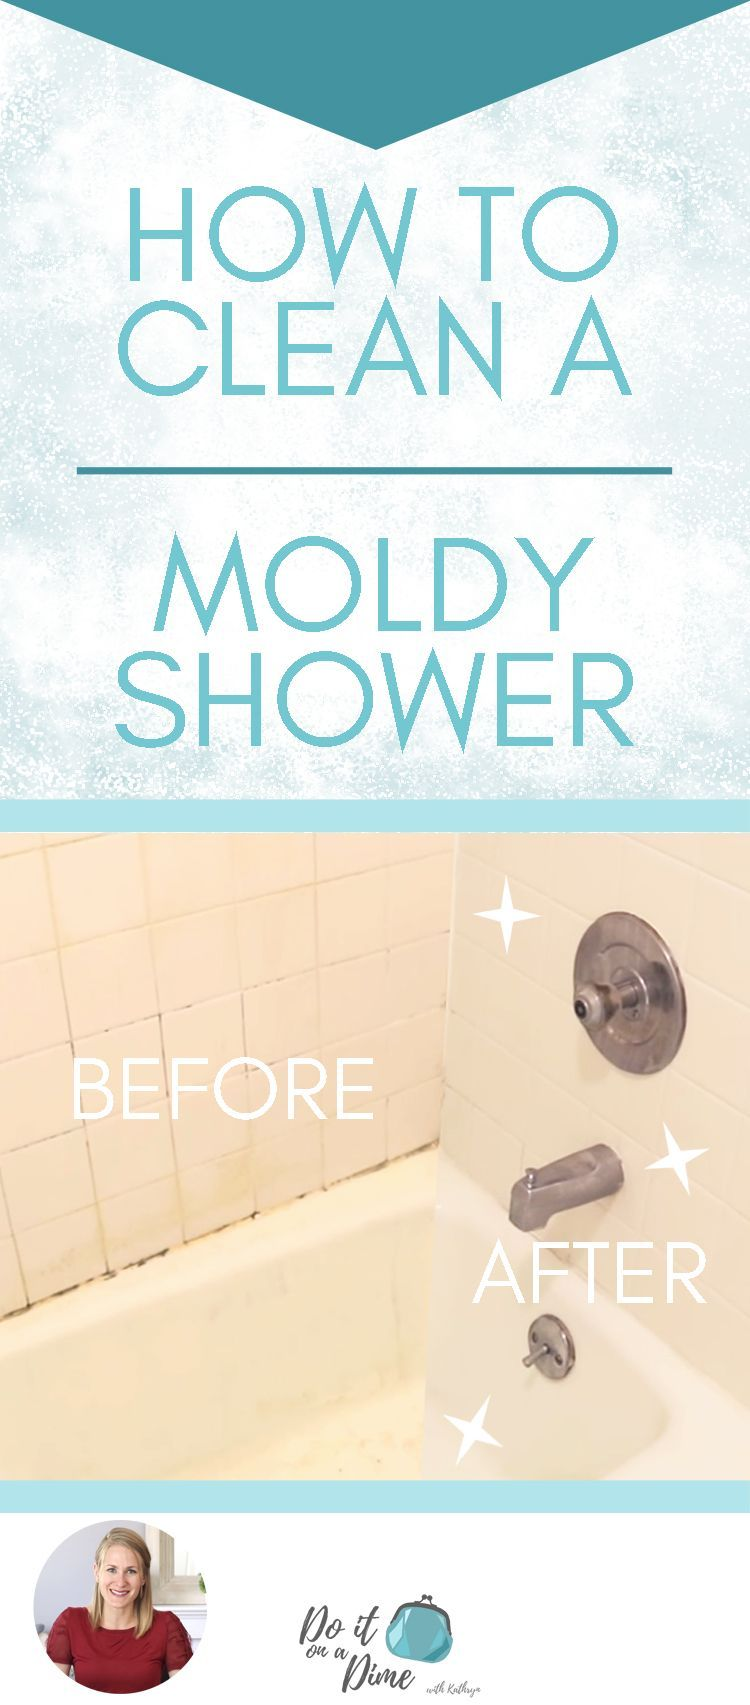 How to Clean a Moldy Shower showertiles Cleaning shower